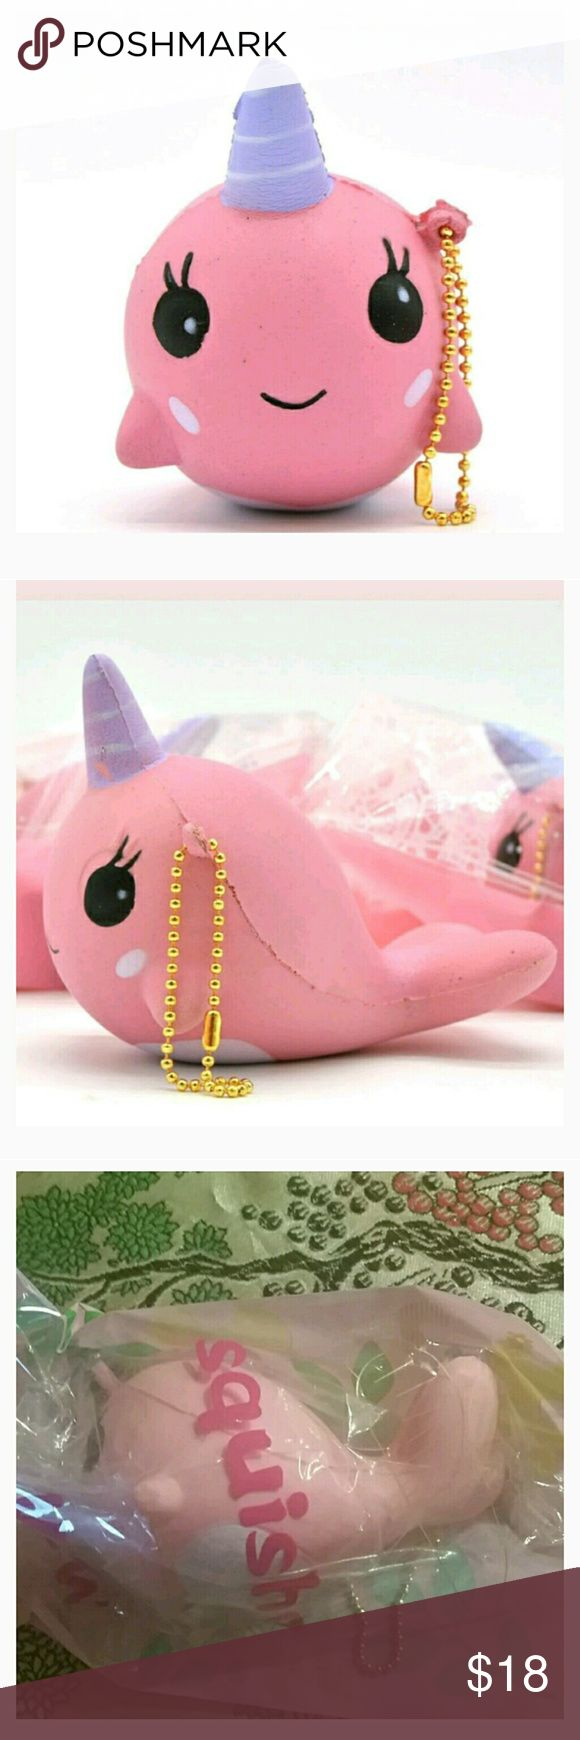 SQUISHY keychain/cell charm narwhal Bonus kawaii Brand new item size of a large mango 4x3 inches approx very cute slow rising in package minor factory defects possibly I have never opened or played w thus, ball chain is intact not broken , Pink only it's new condition , I own 1 my self and love it. FREE KAWAII STATIONARY MINI KIT See last 3 pixs for sample all are different Bonus DO NOT ADVERTISE IN MY CLOSET NO SLIME STORES OTHER KAWAII ITEMS I WILL REPORT U boutique Accessories